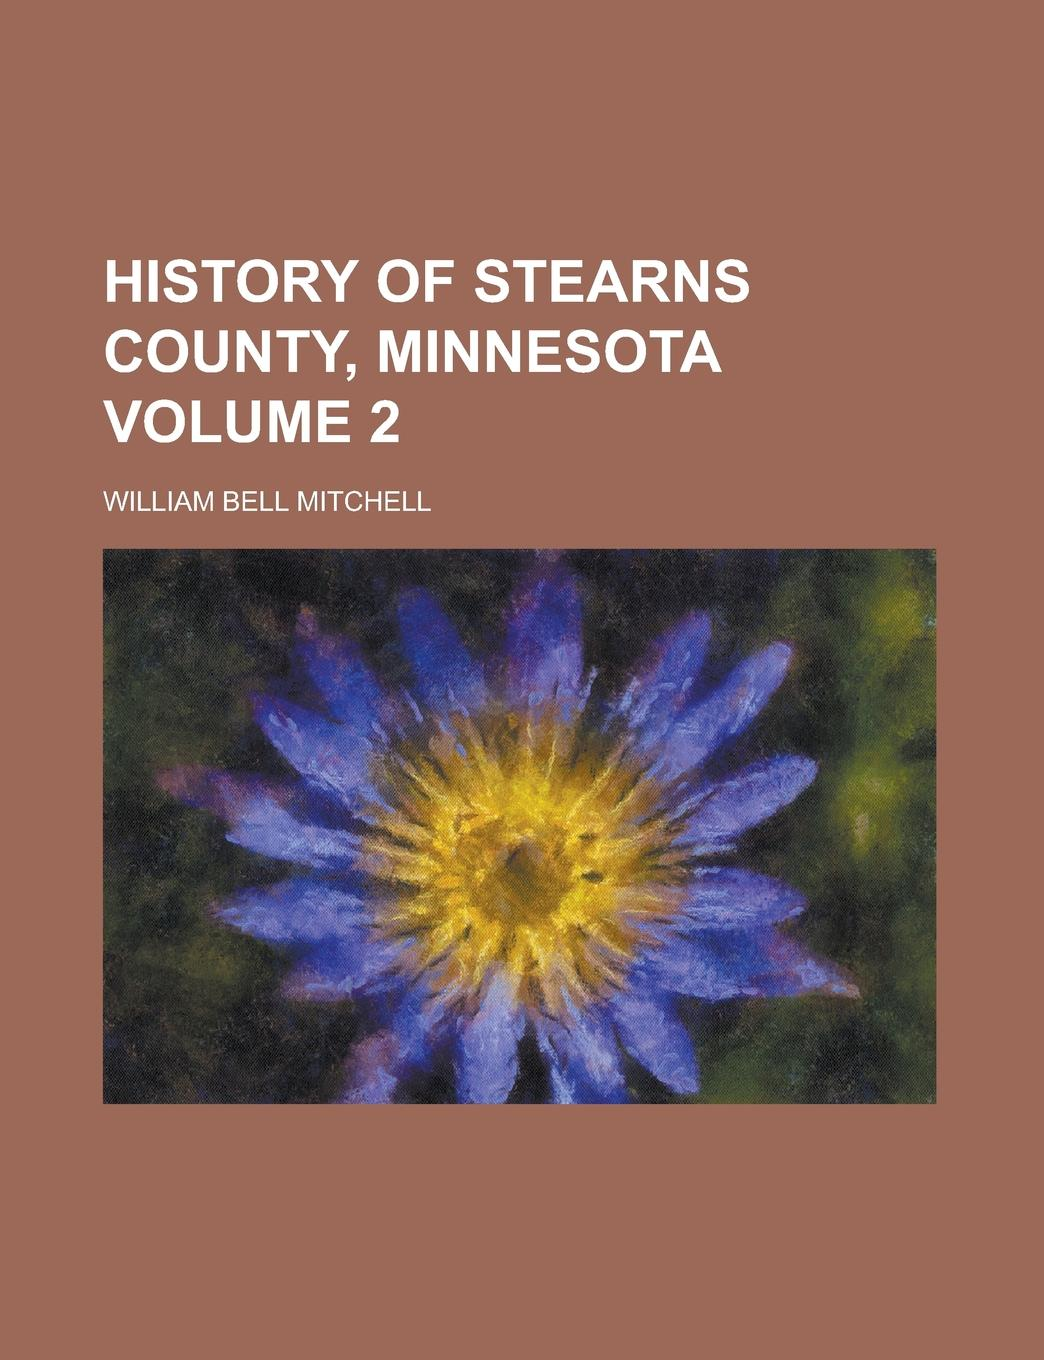 William Bell Mitchell History of Stearns County, Minnesota Volume 2